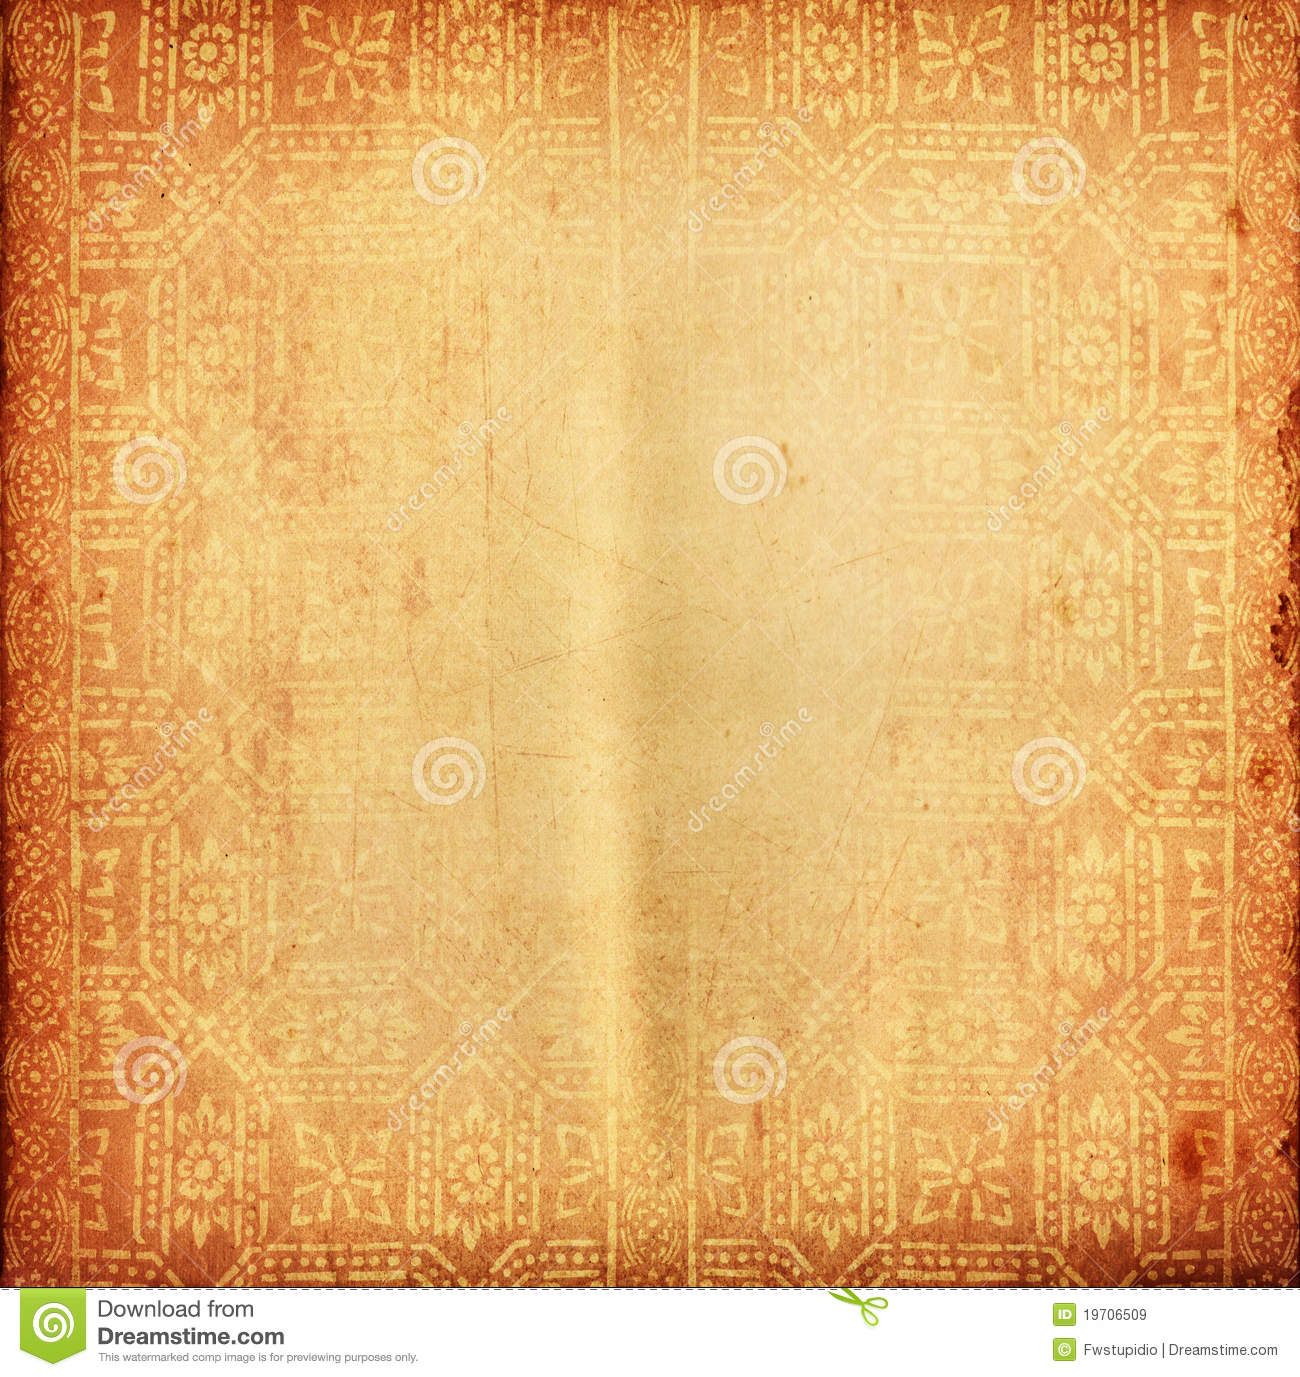 Thai Tradition Old Paper For Text And Background Royalty Free Stock ...